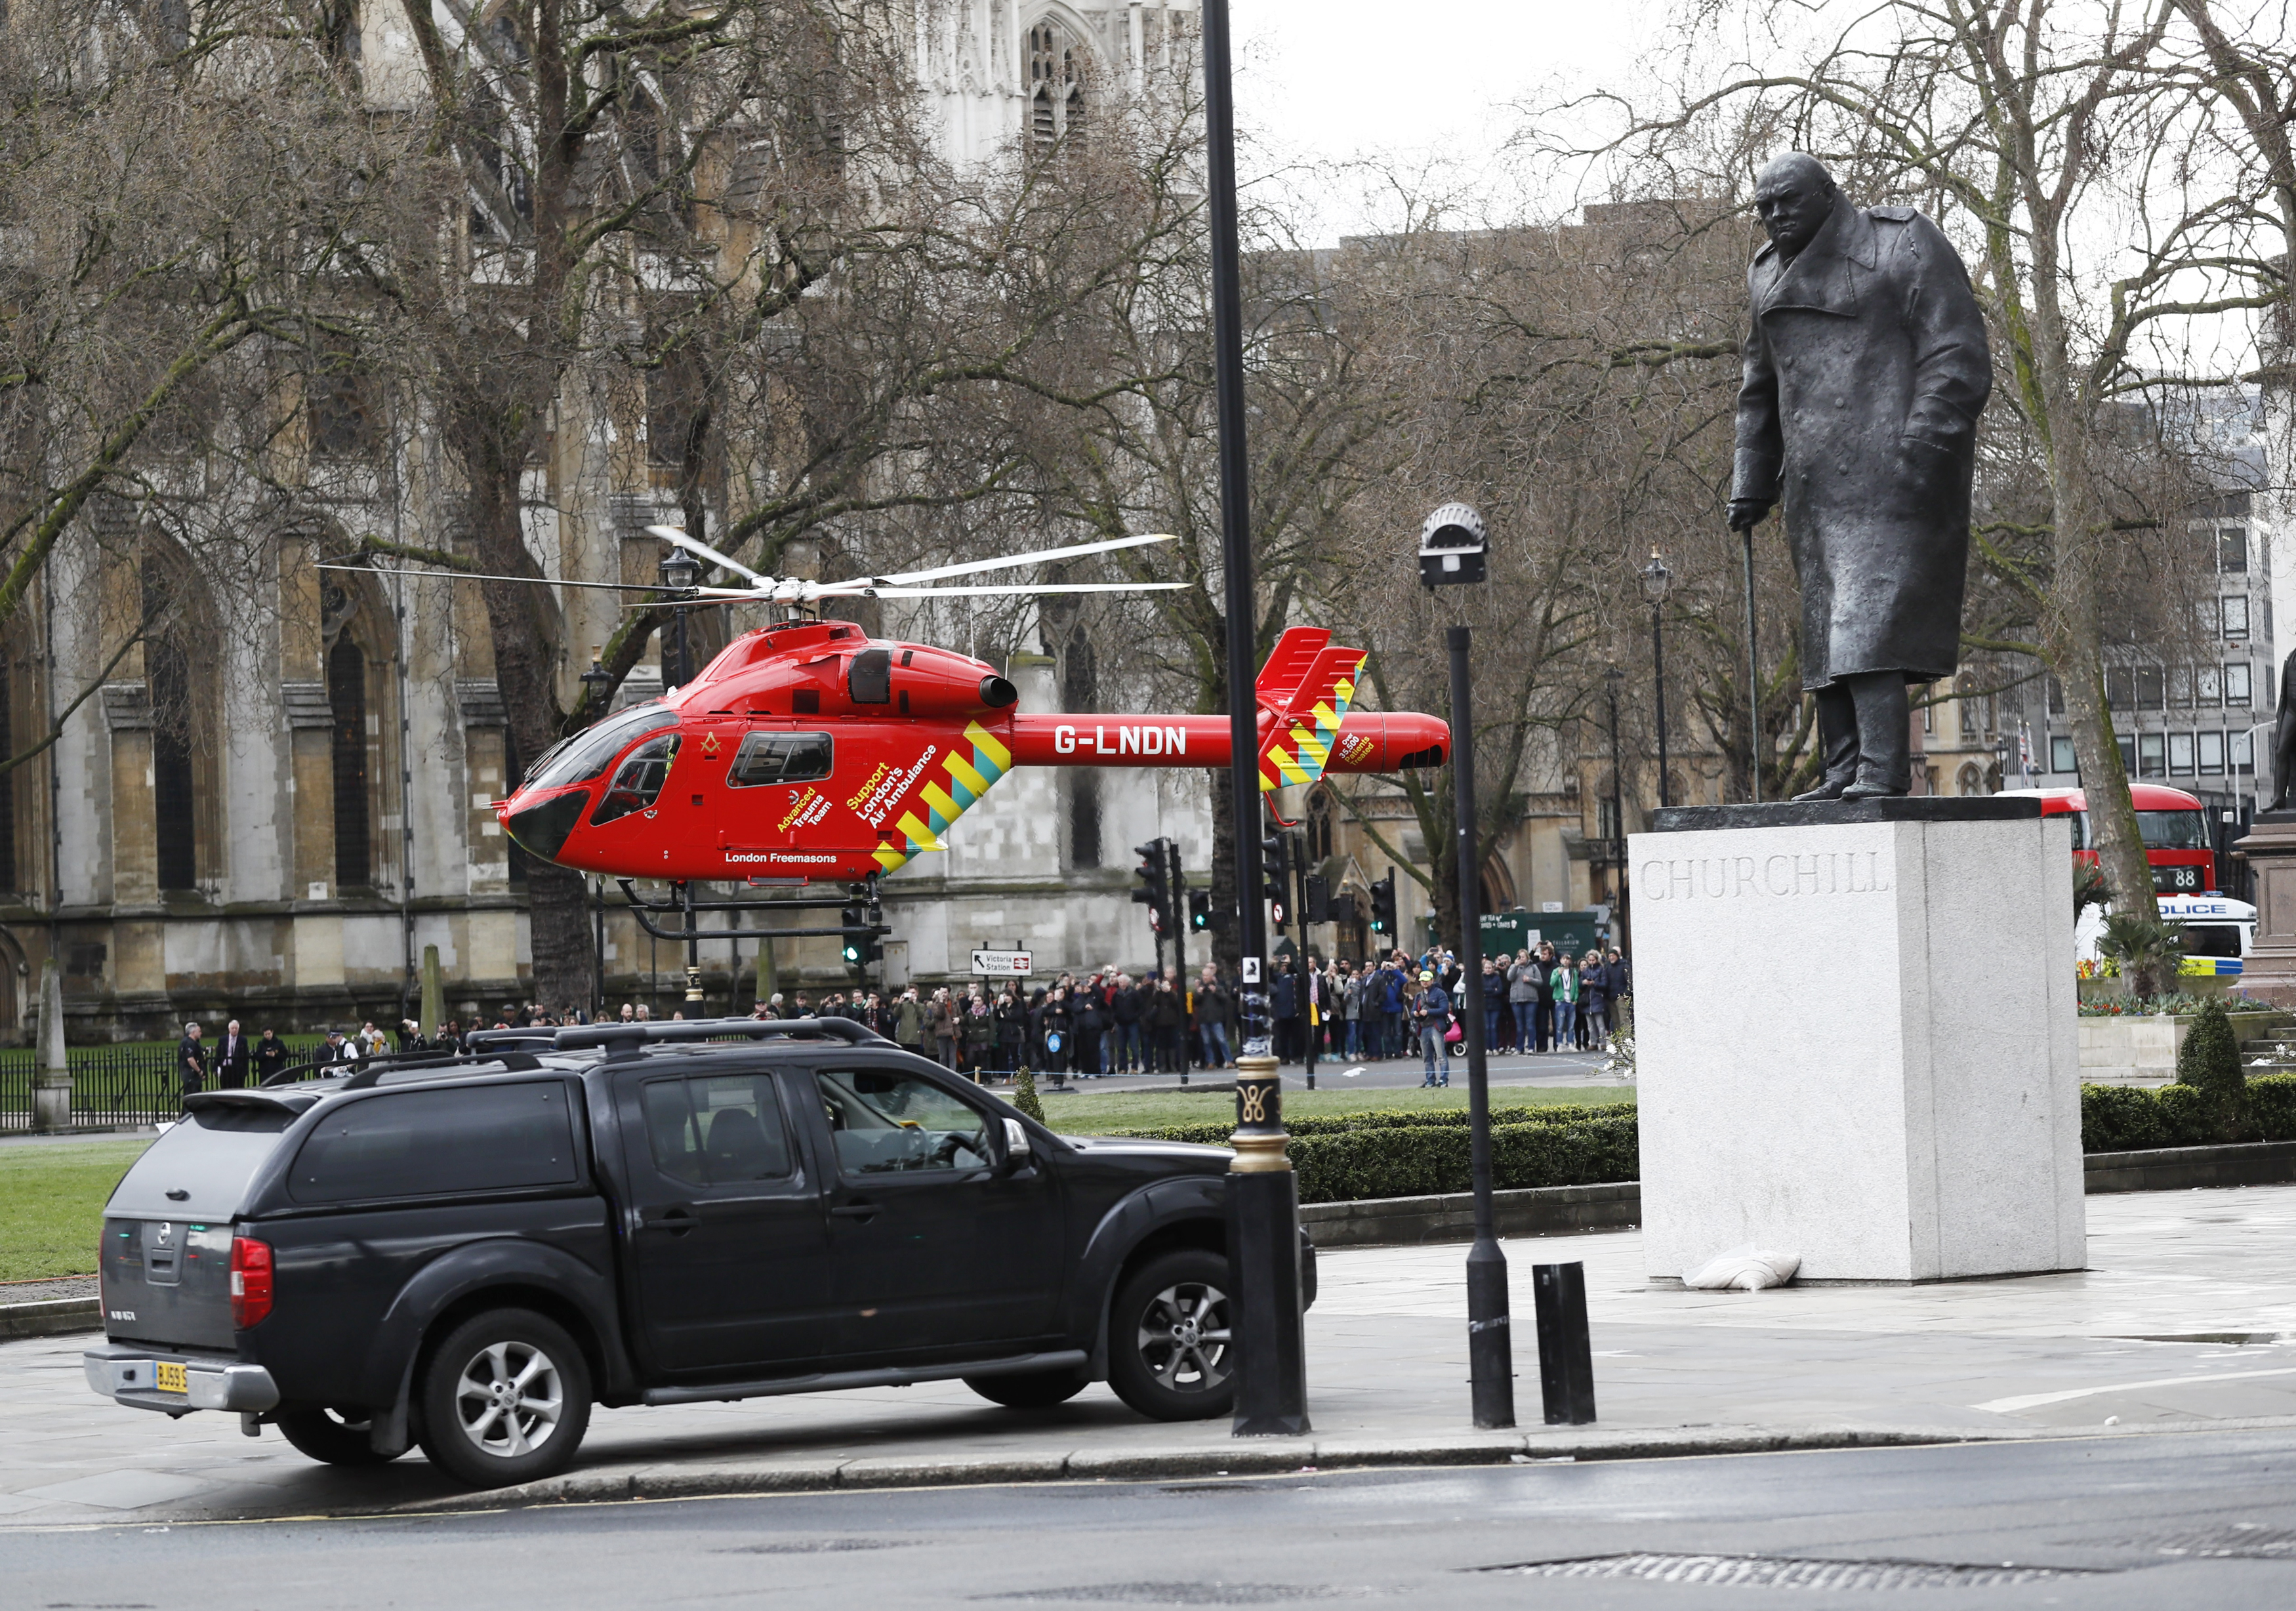 An air ambulance lands in Parliament Square during an incident on Westminster Bridge in London. REUTERS/Stefan Wermuth